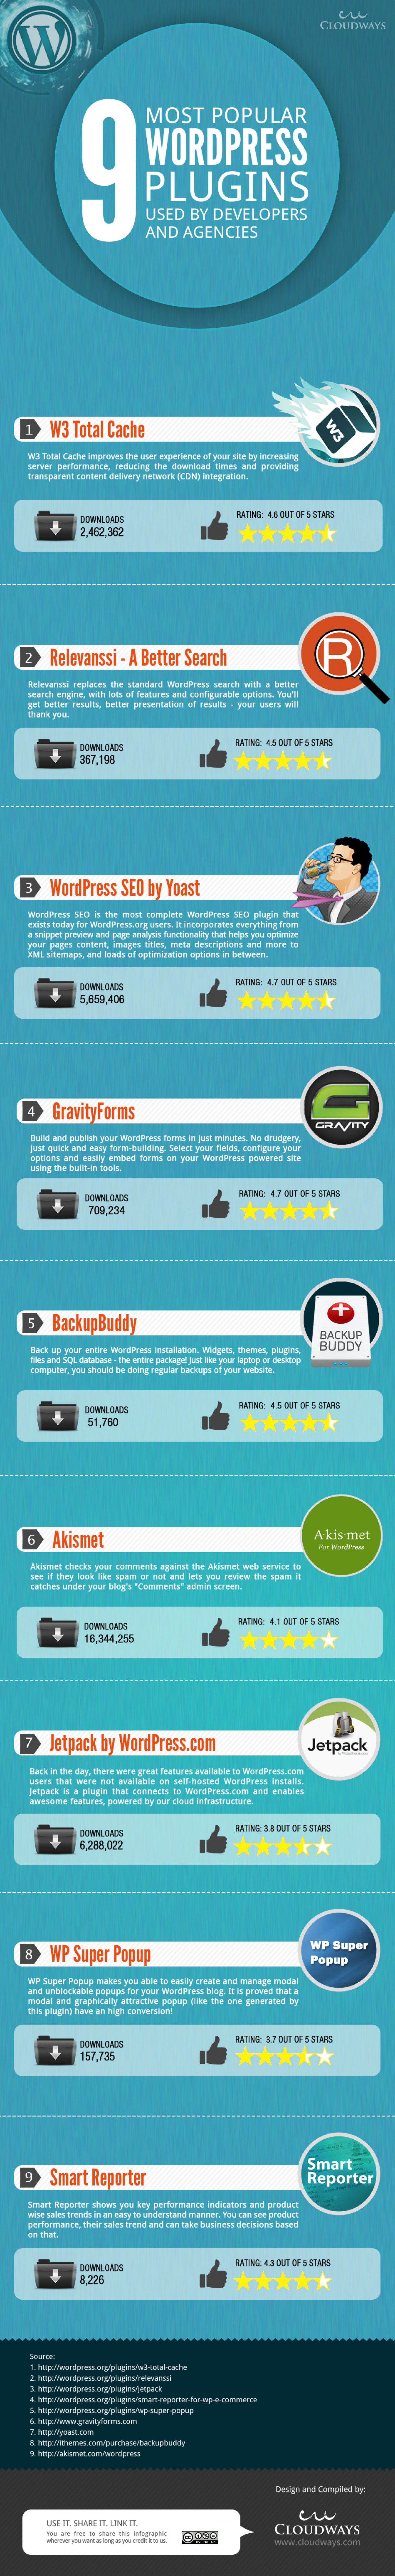 9 WORDPRESS PLUGINS FAVORED BY DEVELOPERS AND AGENCIES Infographic